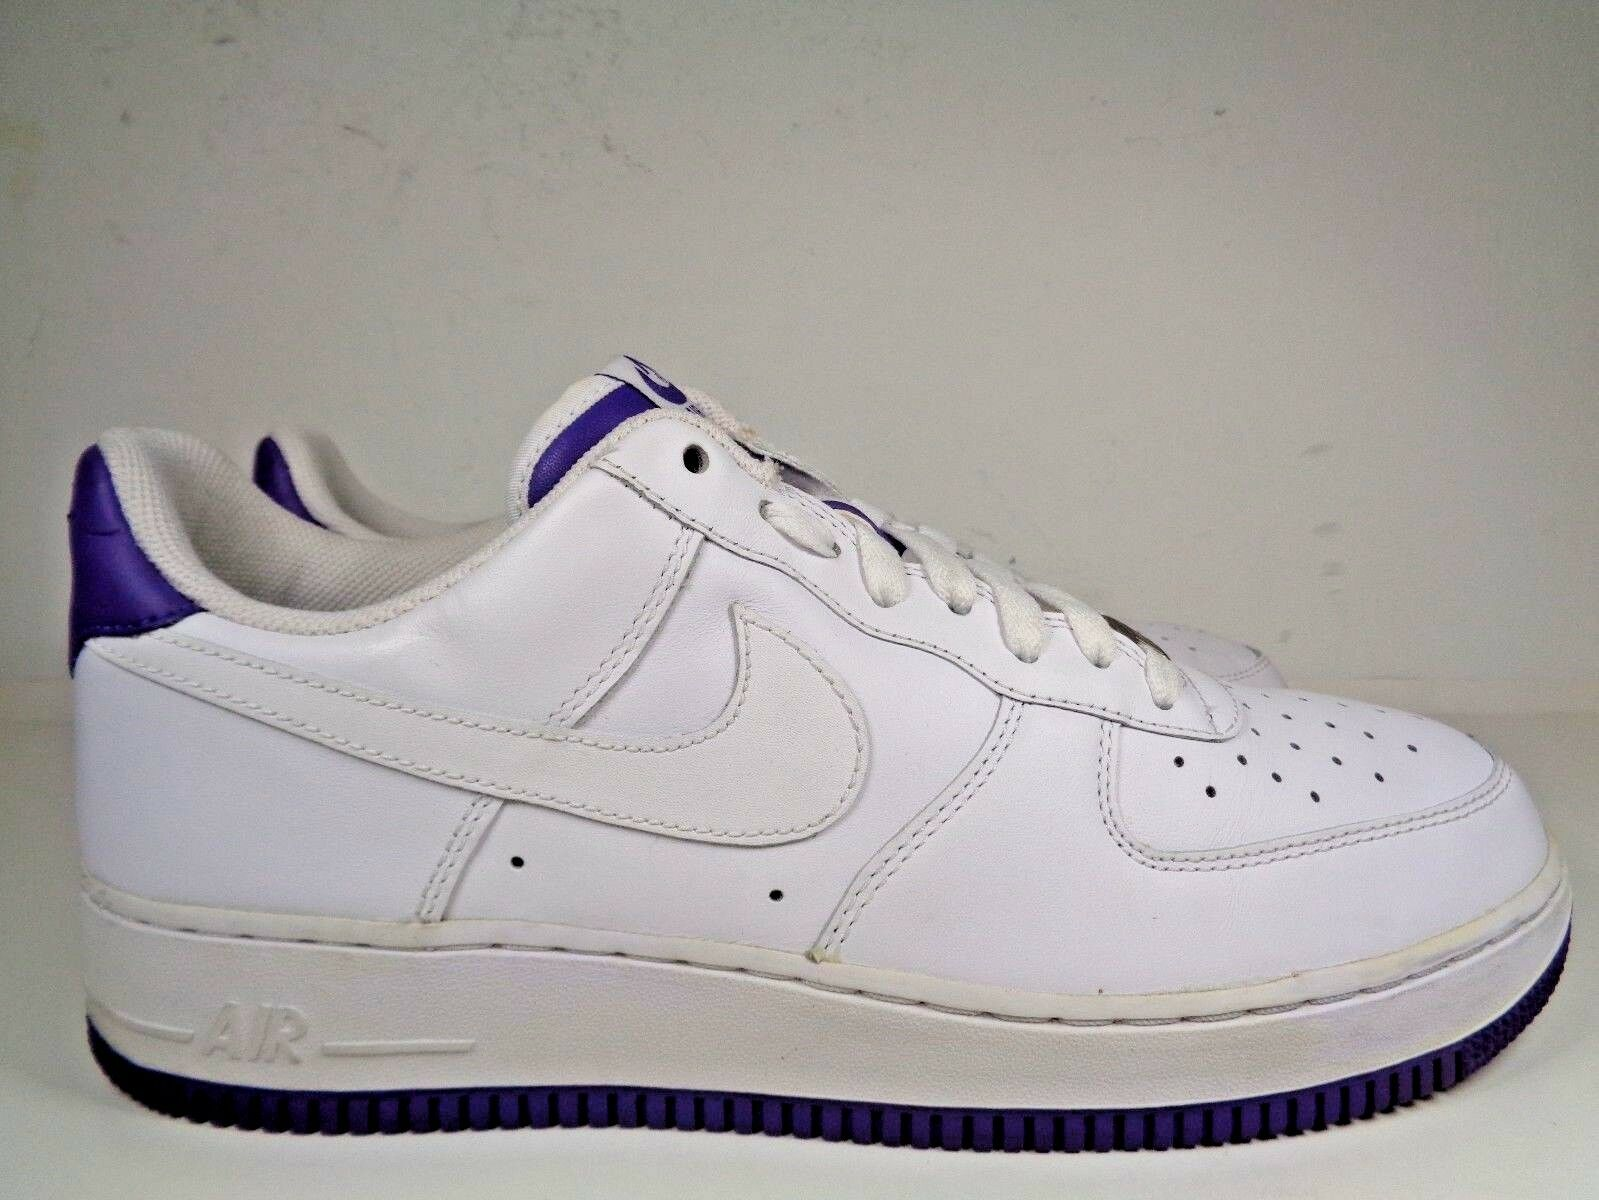 Mens Nike Air Force 1 Varsity Purple Basketball shoes size 10.5 US 315122-115